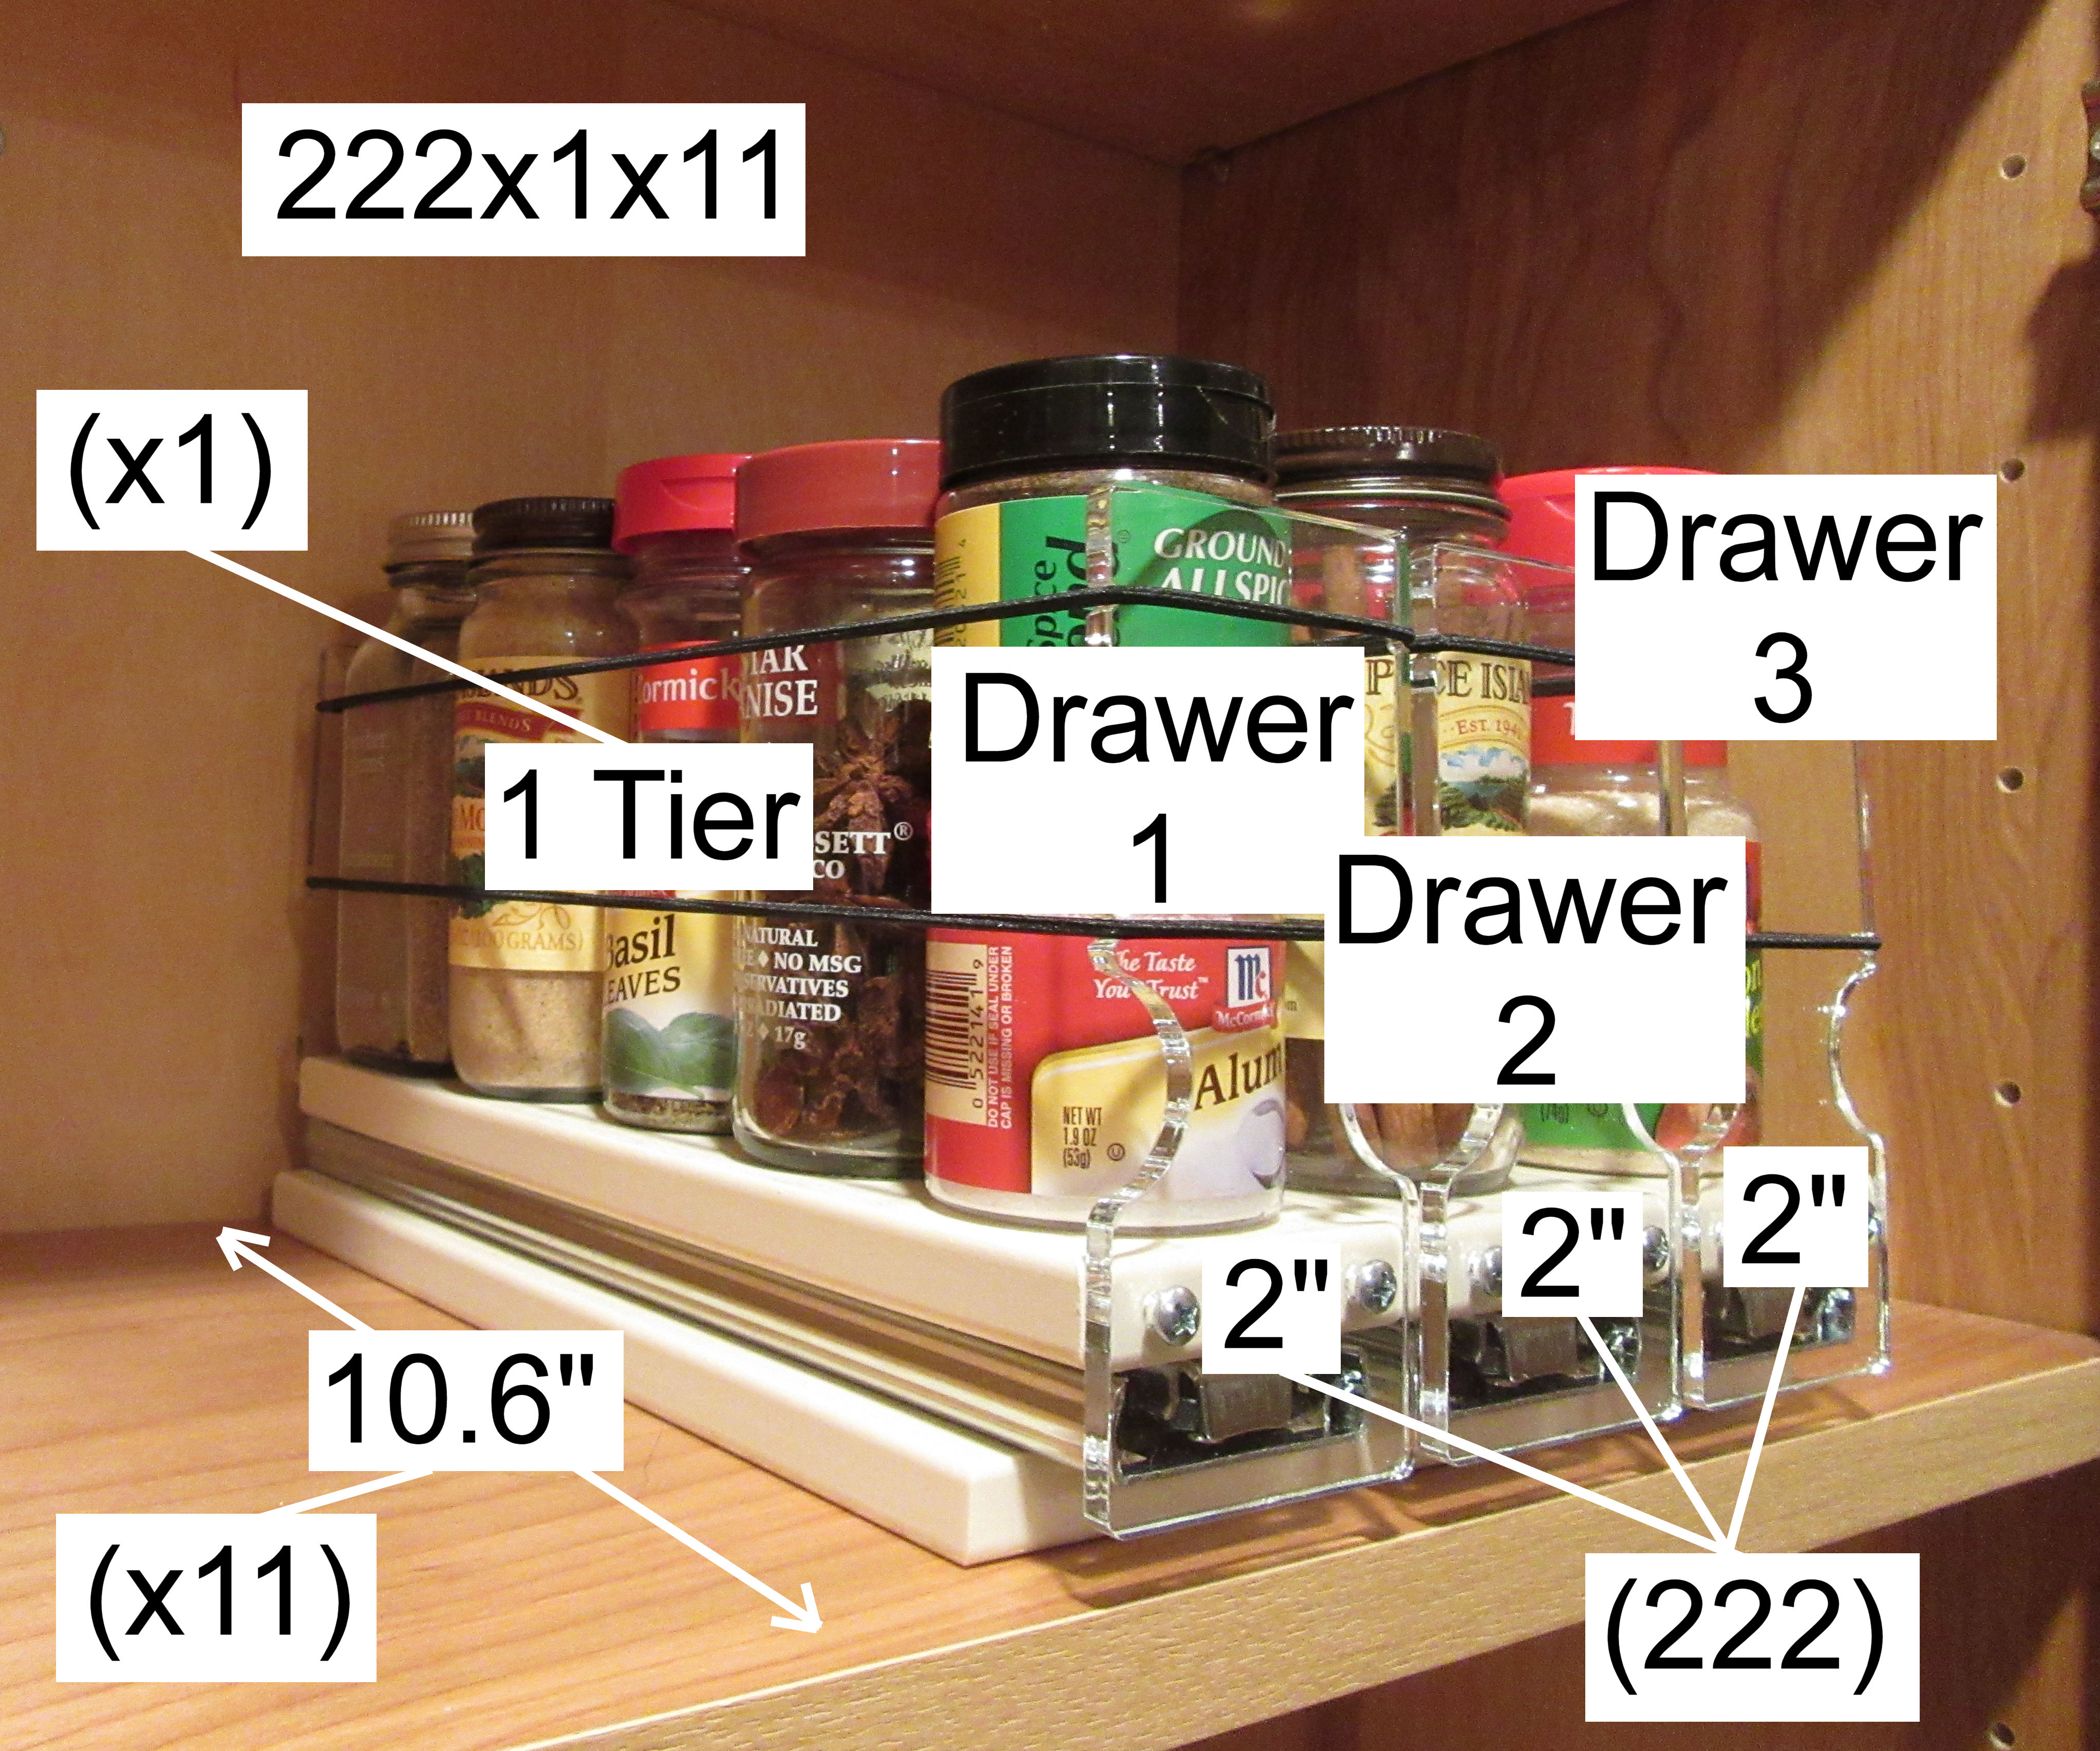 How the 222x1x11 Spice Rack is named